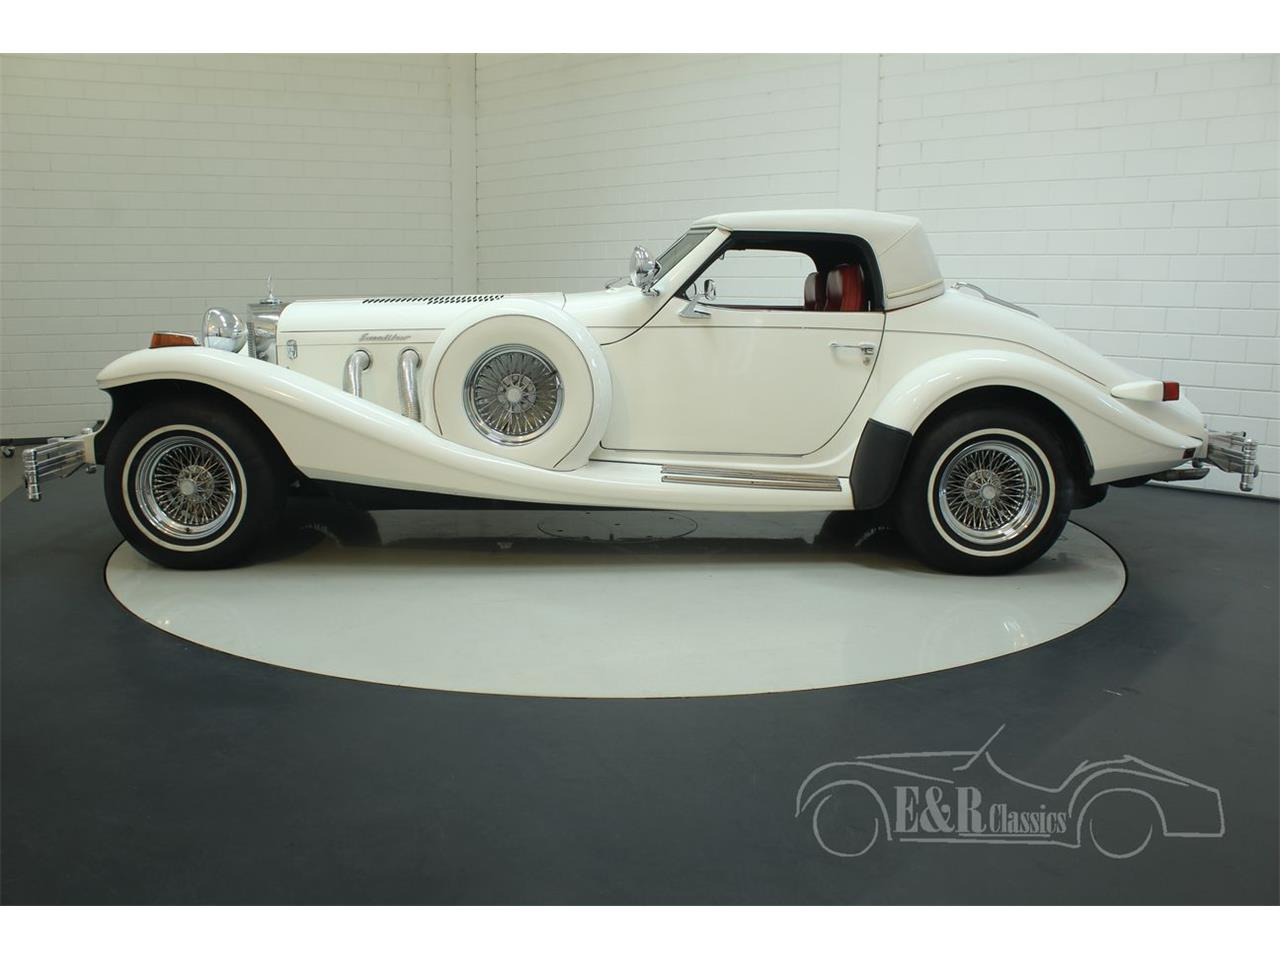 Large Picture of 1982 Excalibur Series IV Phaeton located in Waalwijk noord brabant - $78,450.00 - Q3GF